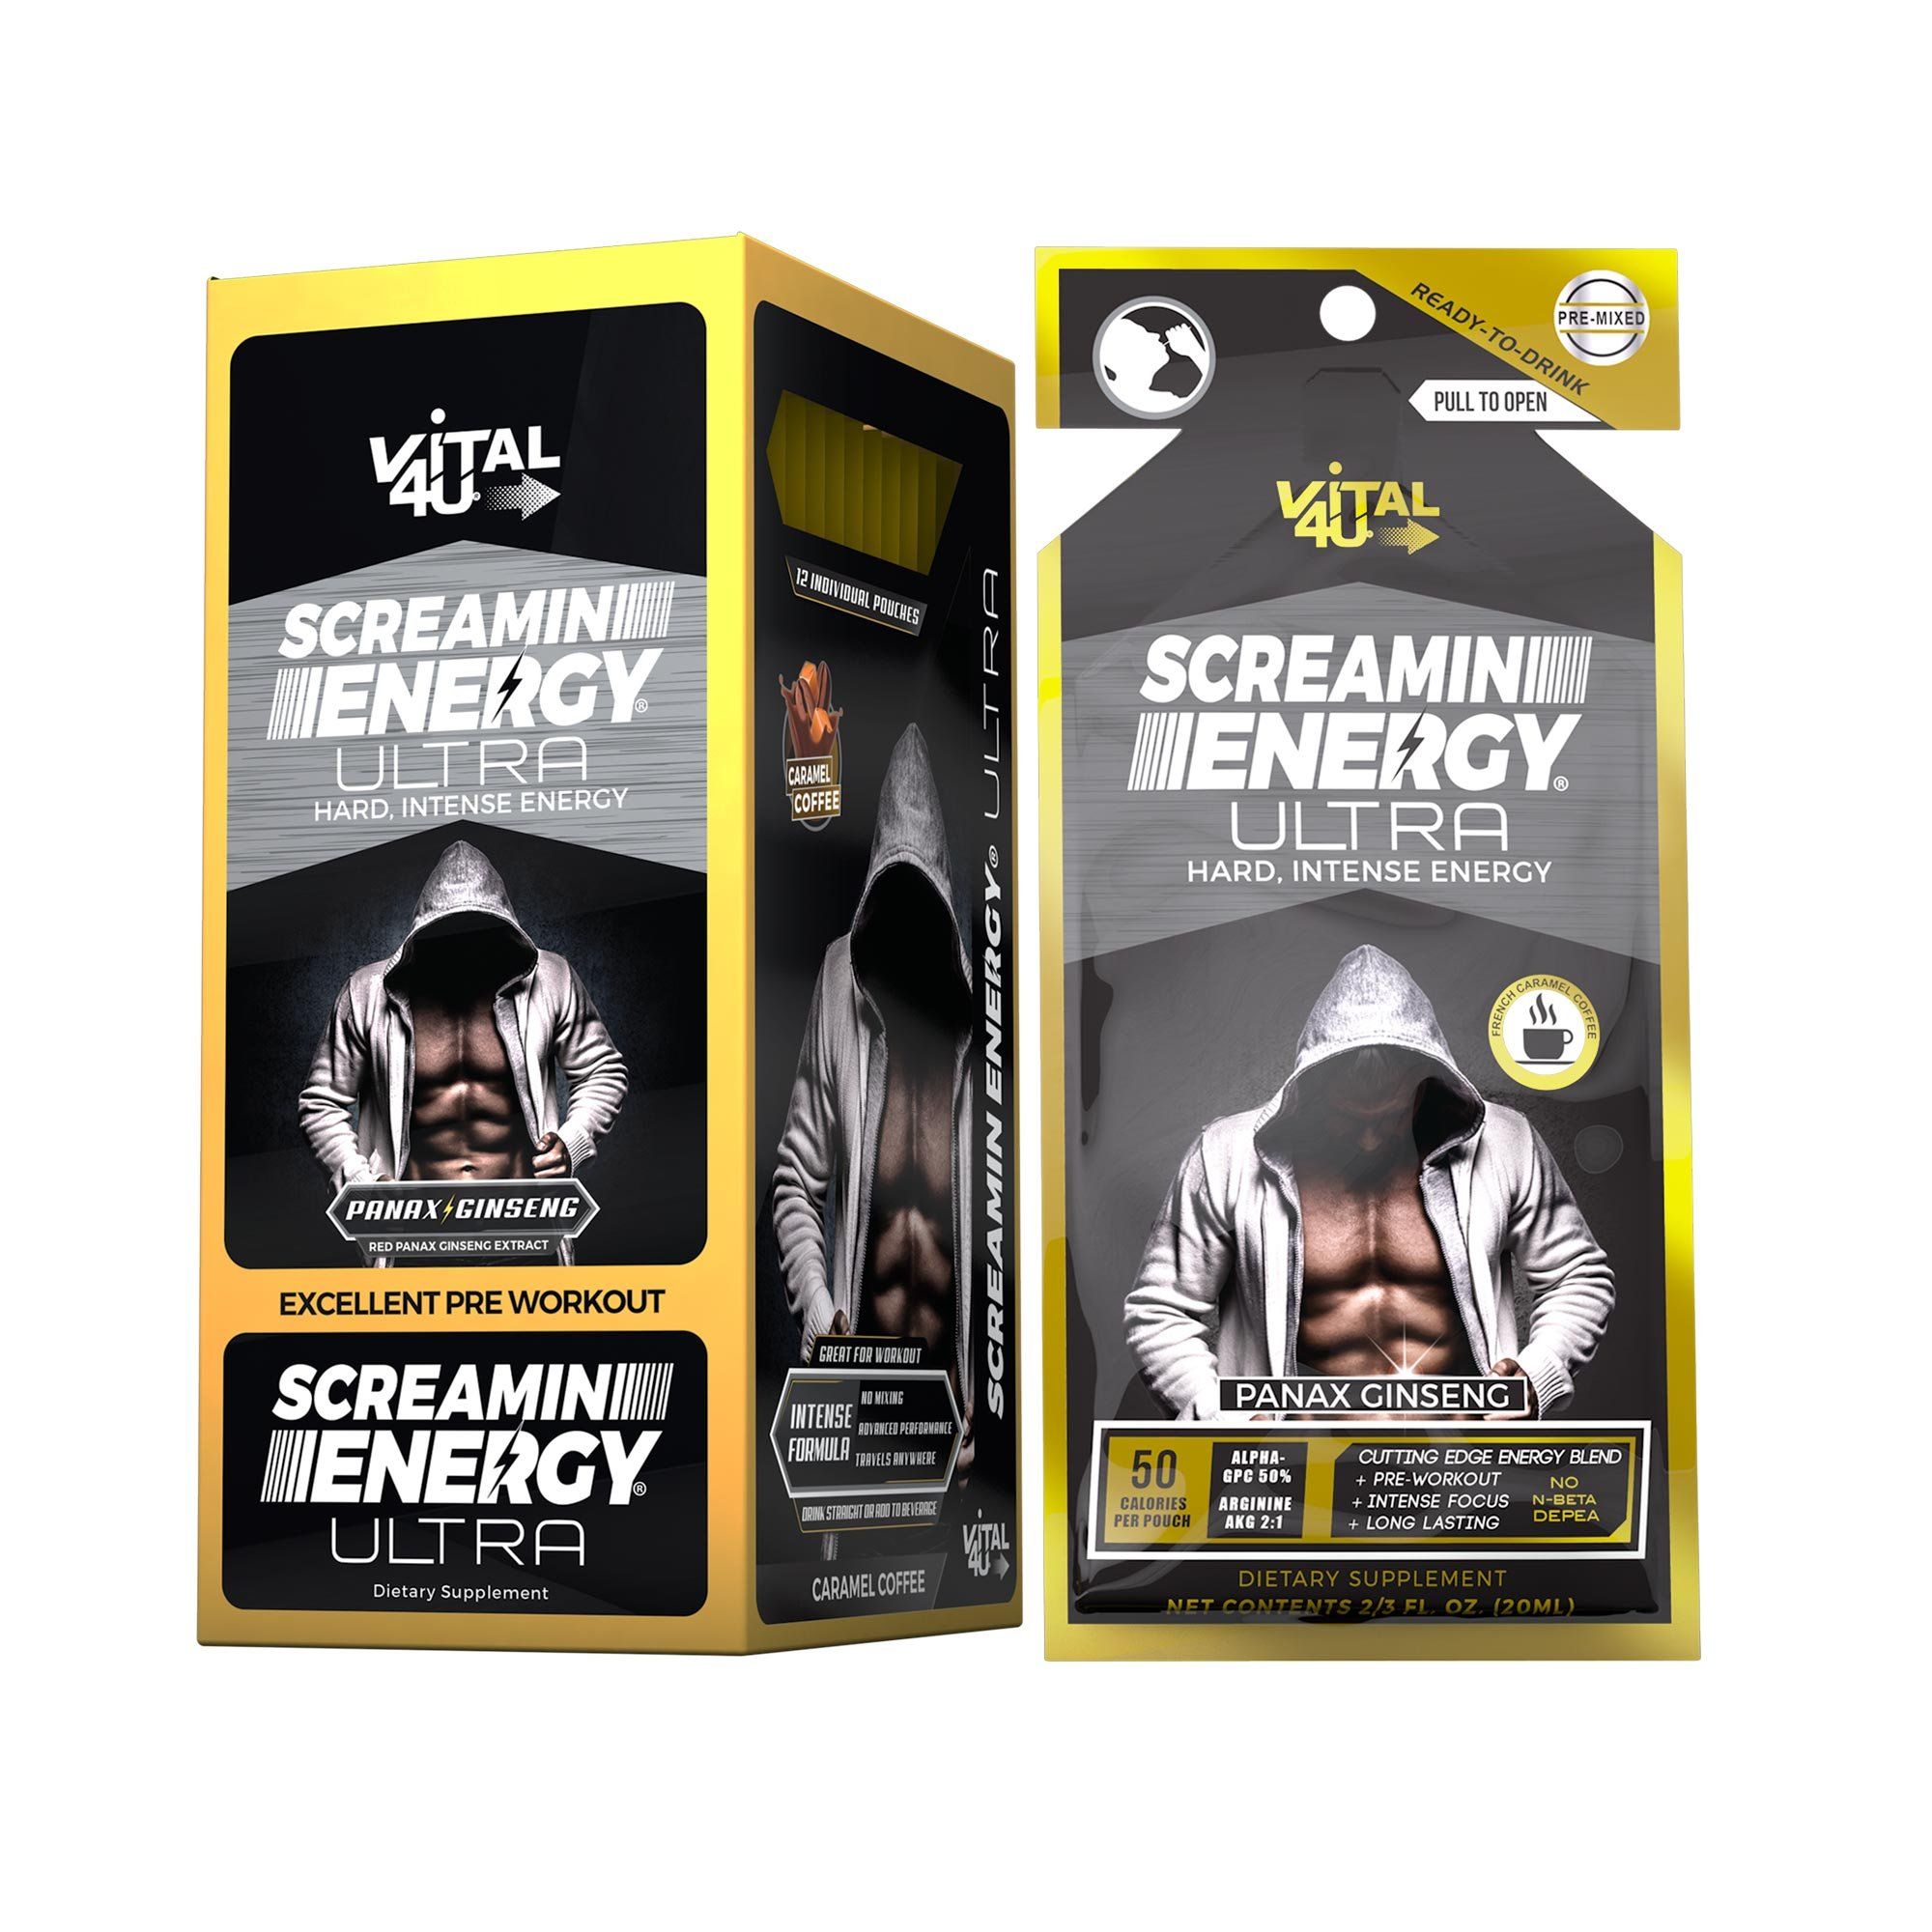 Screamin Energy Ultra, Pre-Workout Energy Shot with Caffeine, L-Arginine AKG, Alpha GPC, and Ginseng, French Roast Caramel Coffee Flavor, 24 Count by VITAL 4U